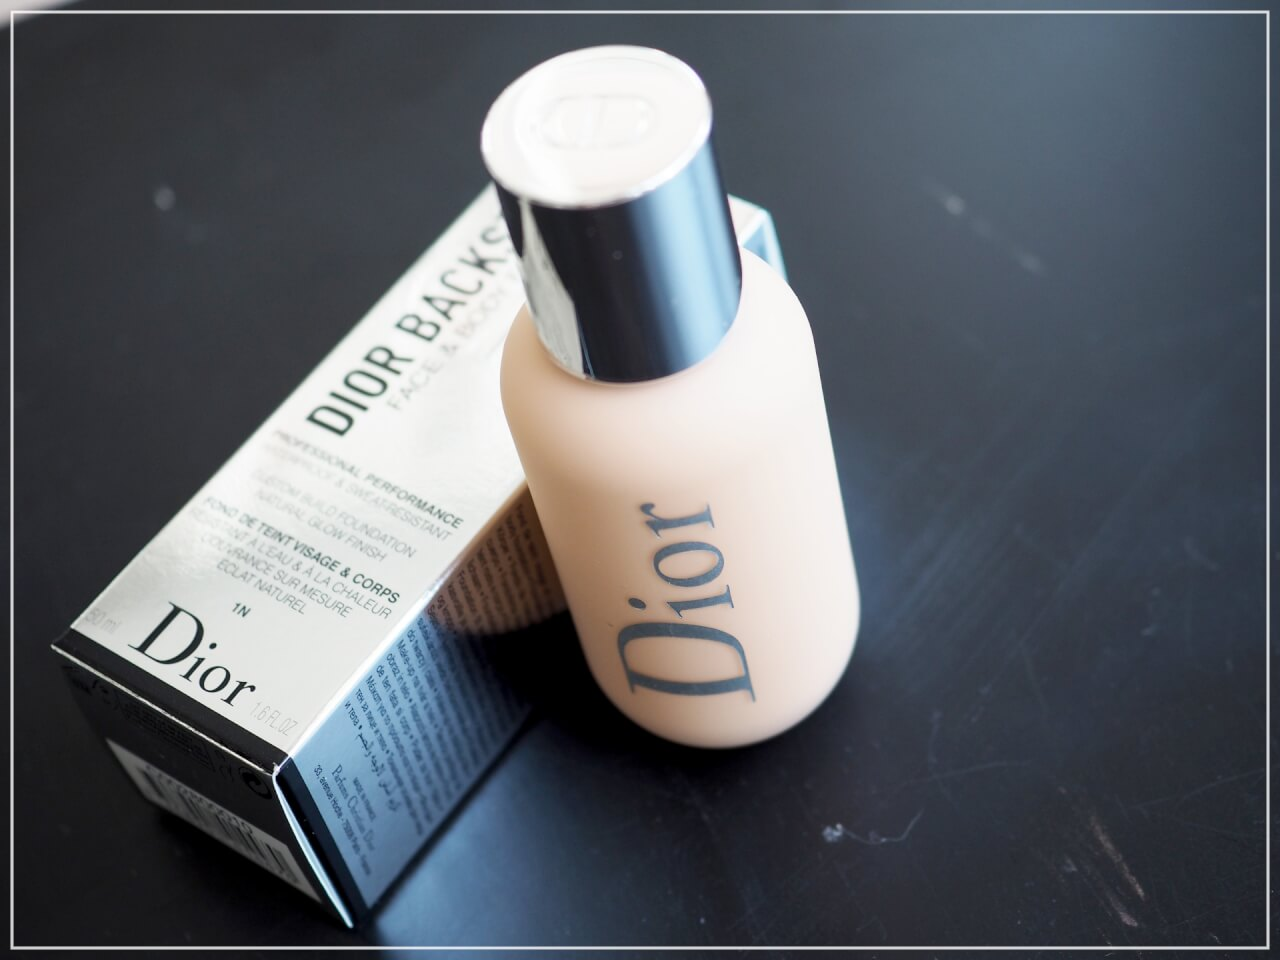 Dior Backstage Face & Body Foundation